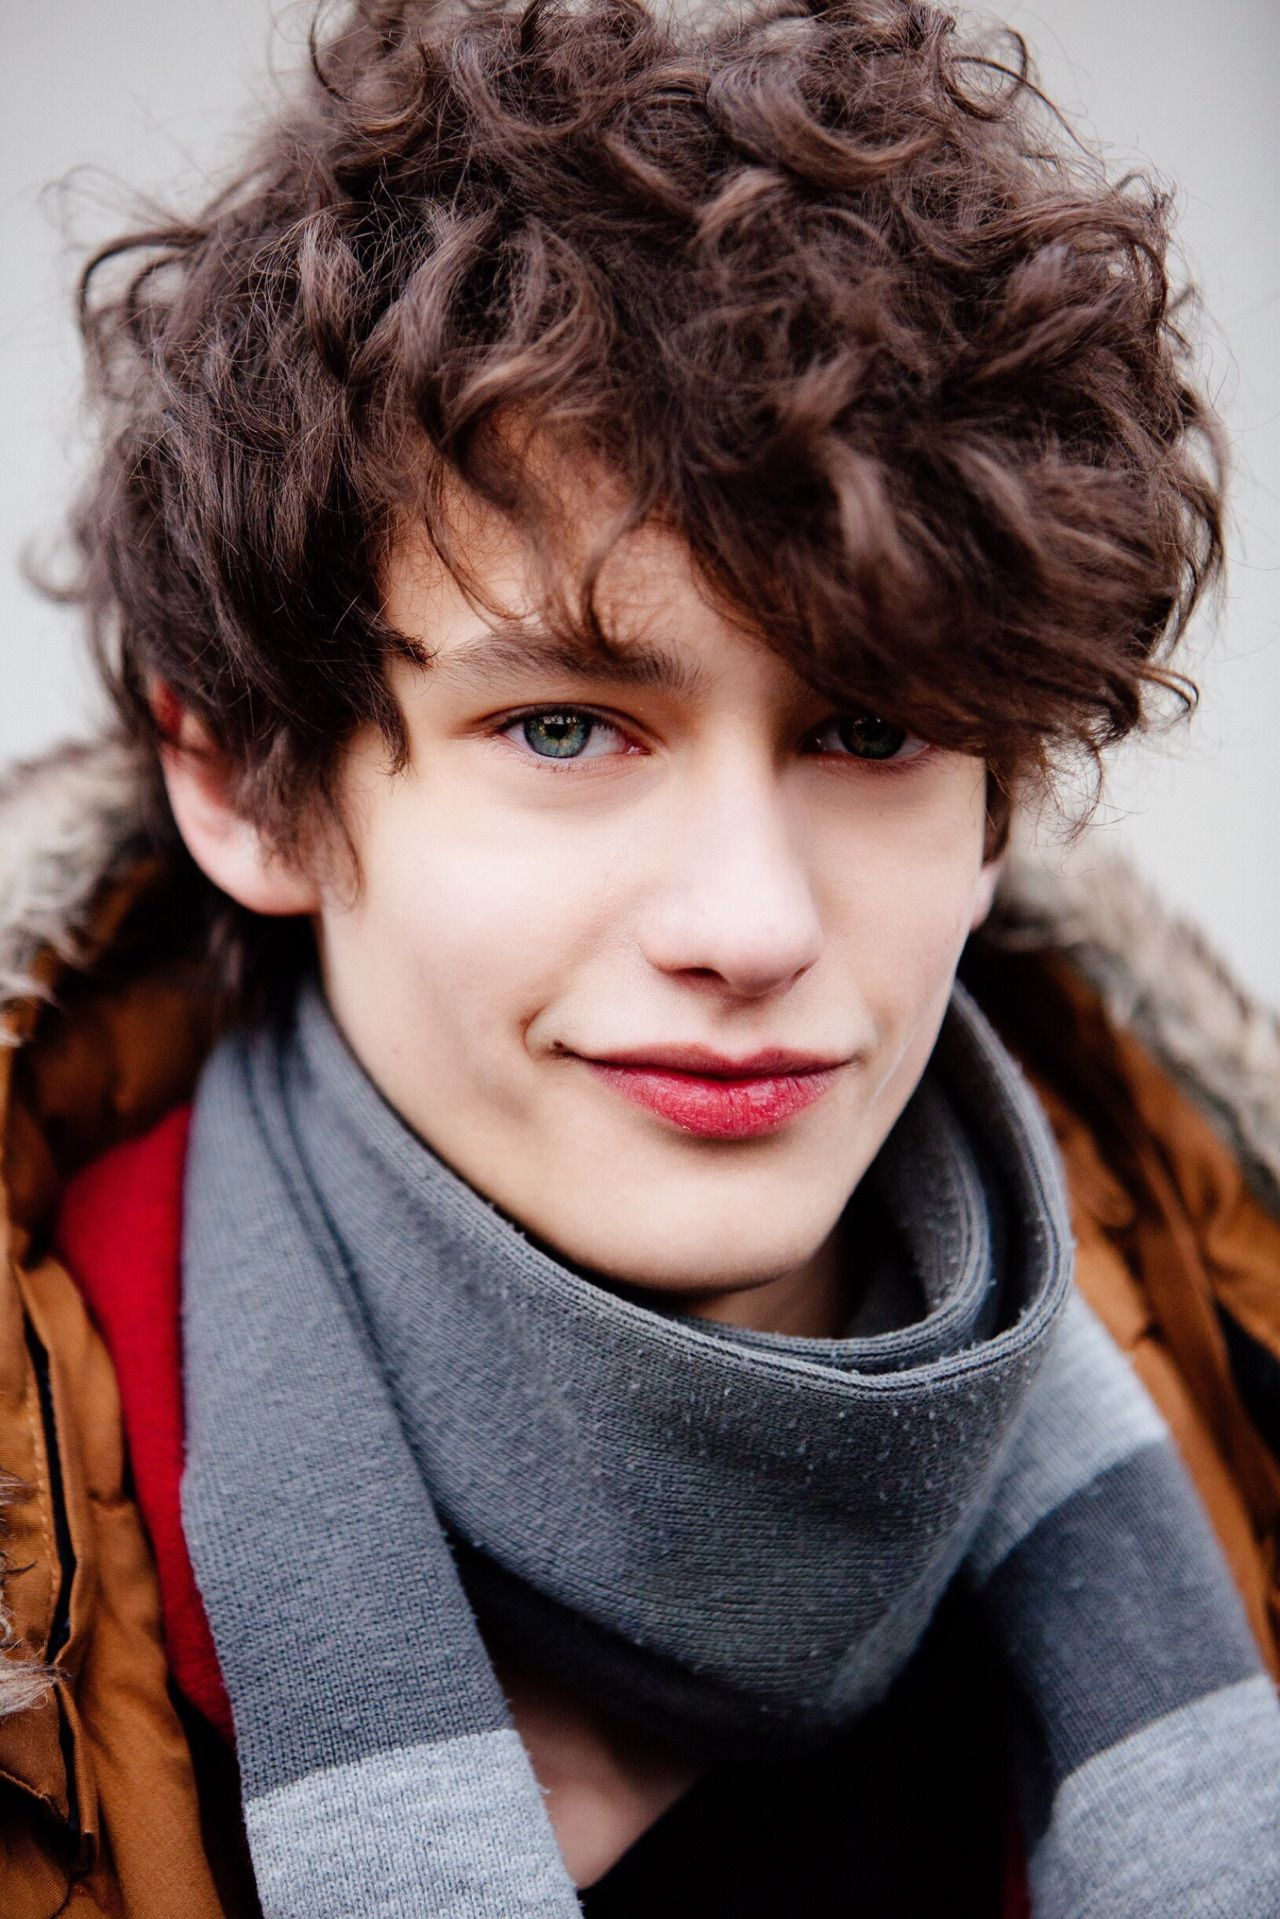 Male Model Street Style Mens Hairstyles Male Face Fashion Model Poses